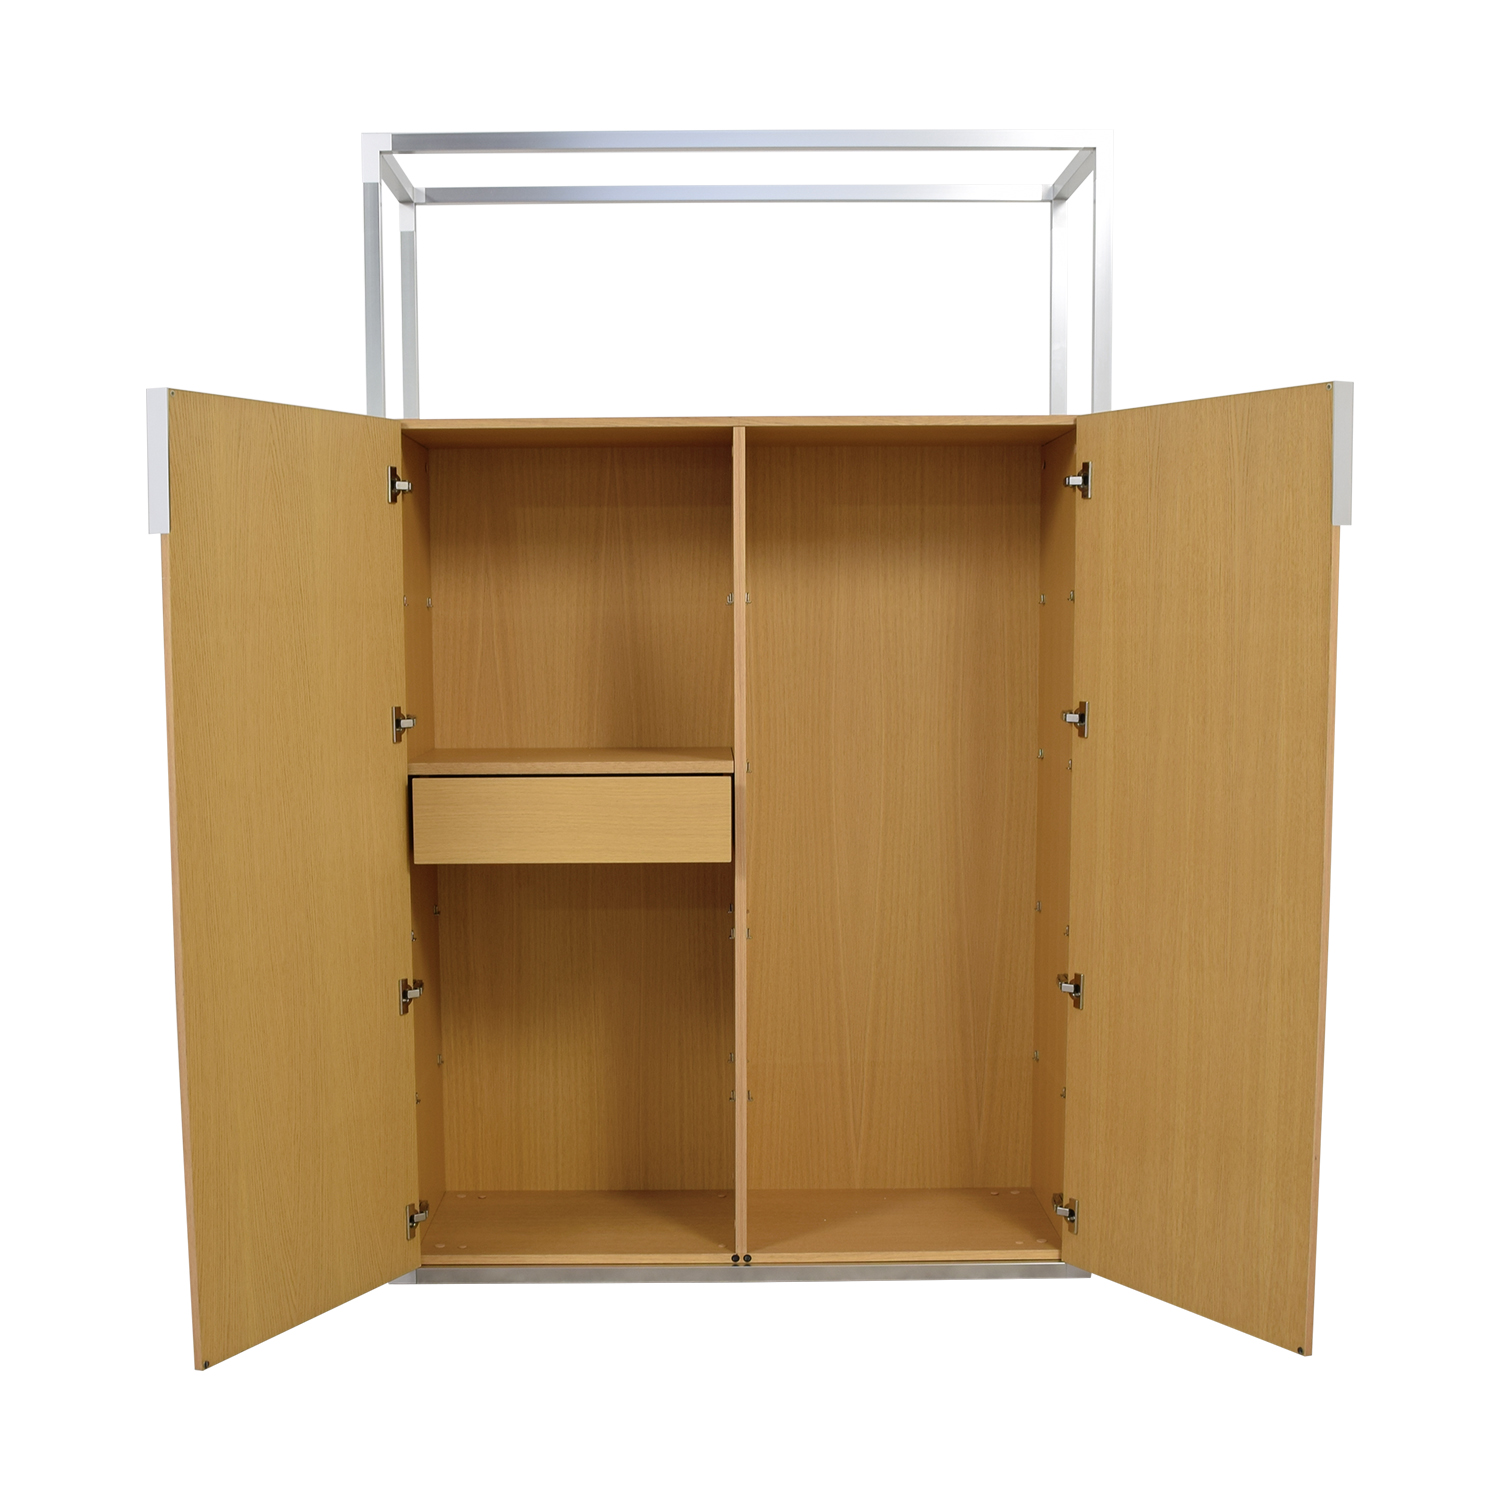 Ligne Roset Ligne Roset Wooden Wardrobe with Metal Top Frame price